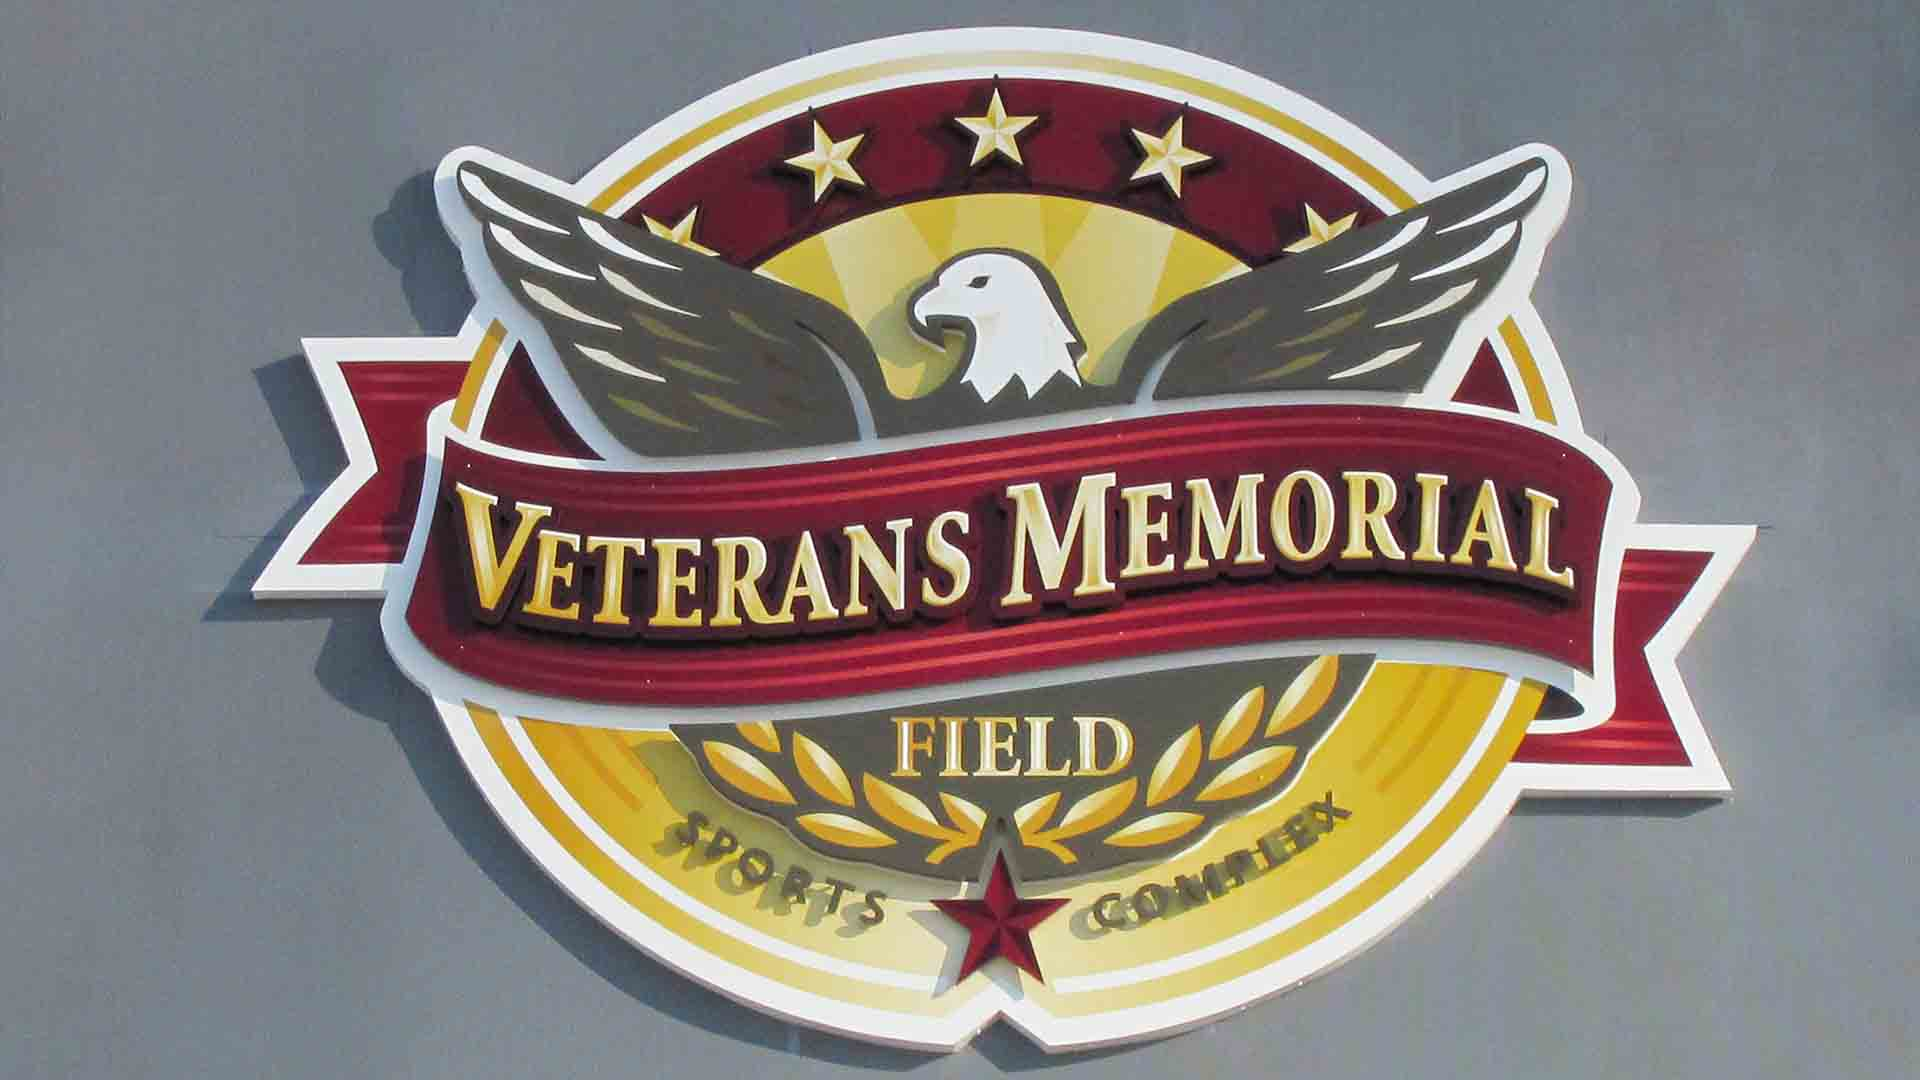 Dimensional Veteran's Memorial Logo on Entrance